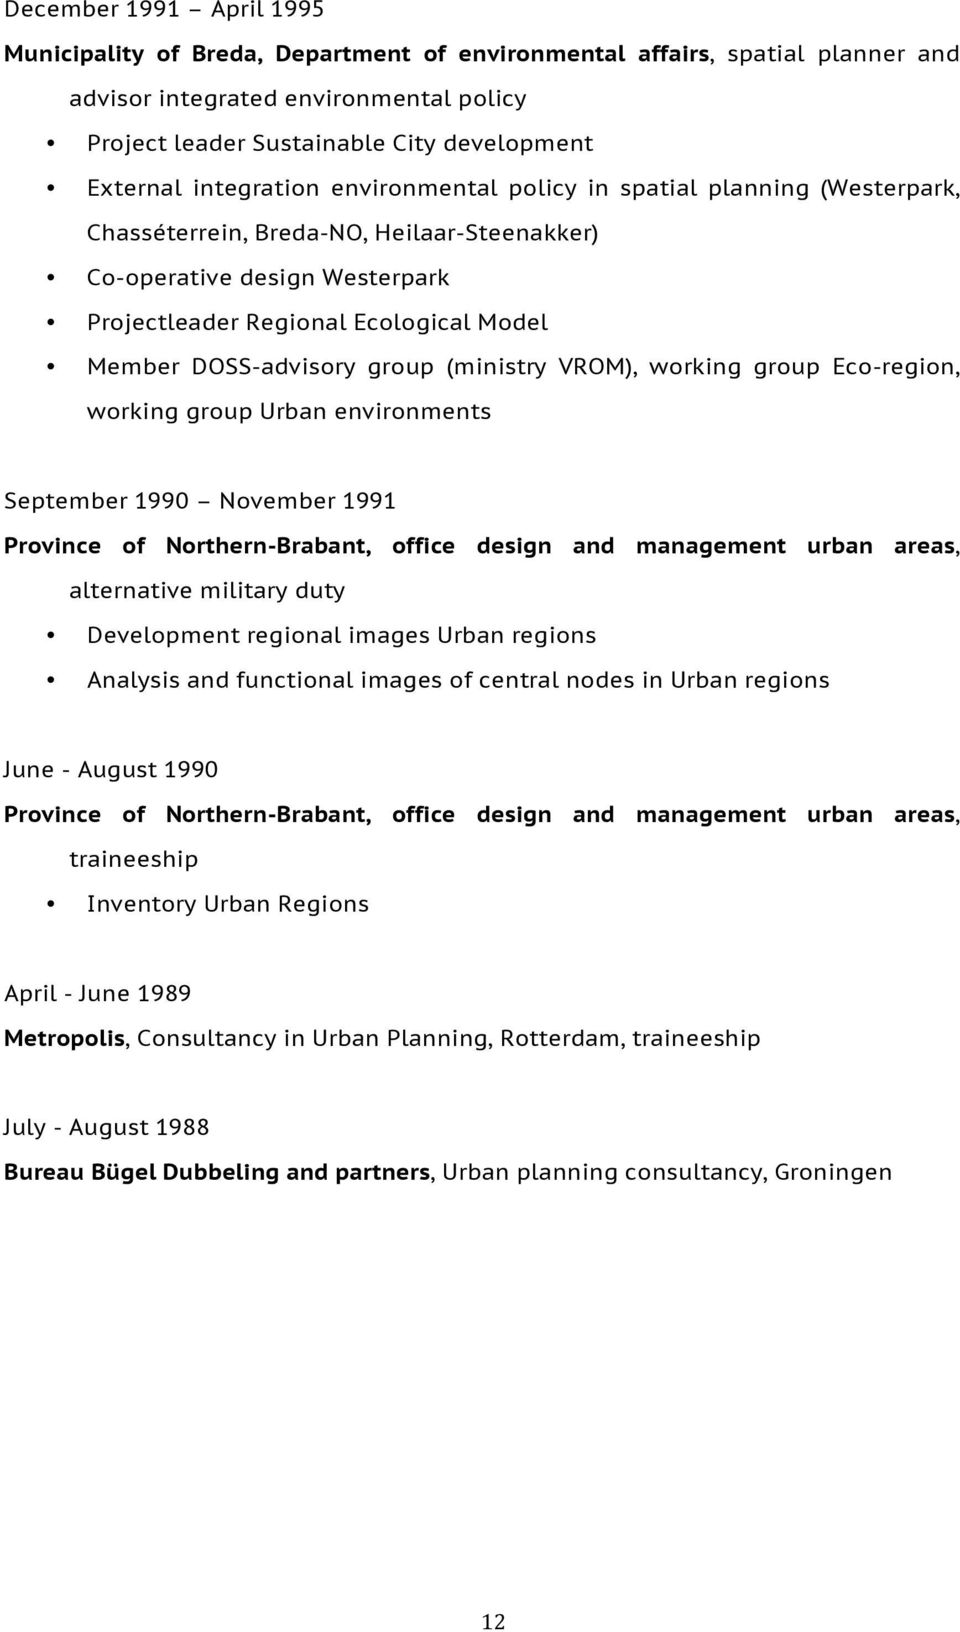 DOSS-advisory group (ministry VROM), working group Eco-region, working group Urban environments September 1990 November 1991 Province of Northern-Brabant, office design and management urban areas,